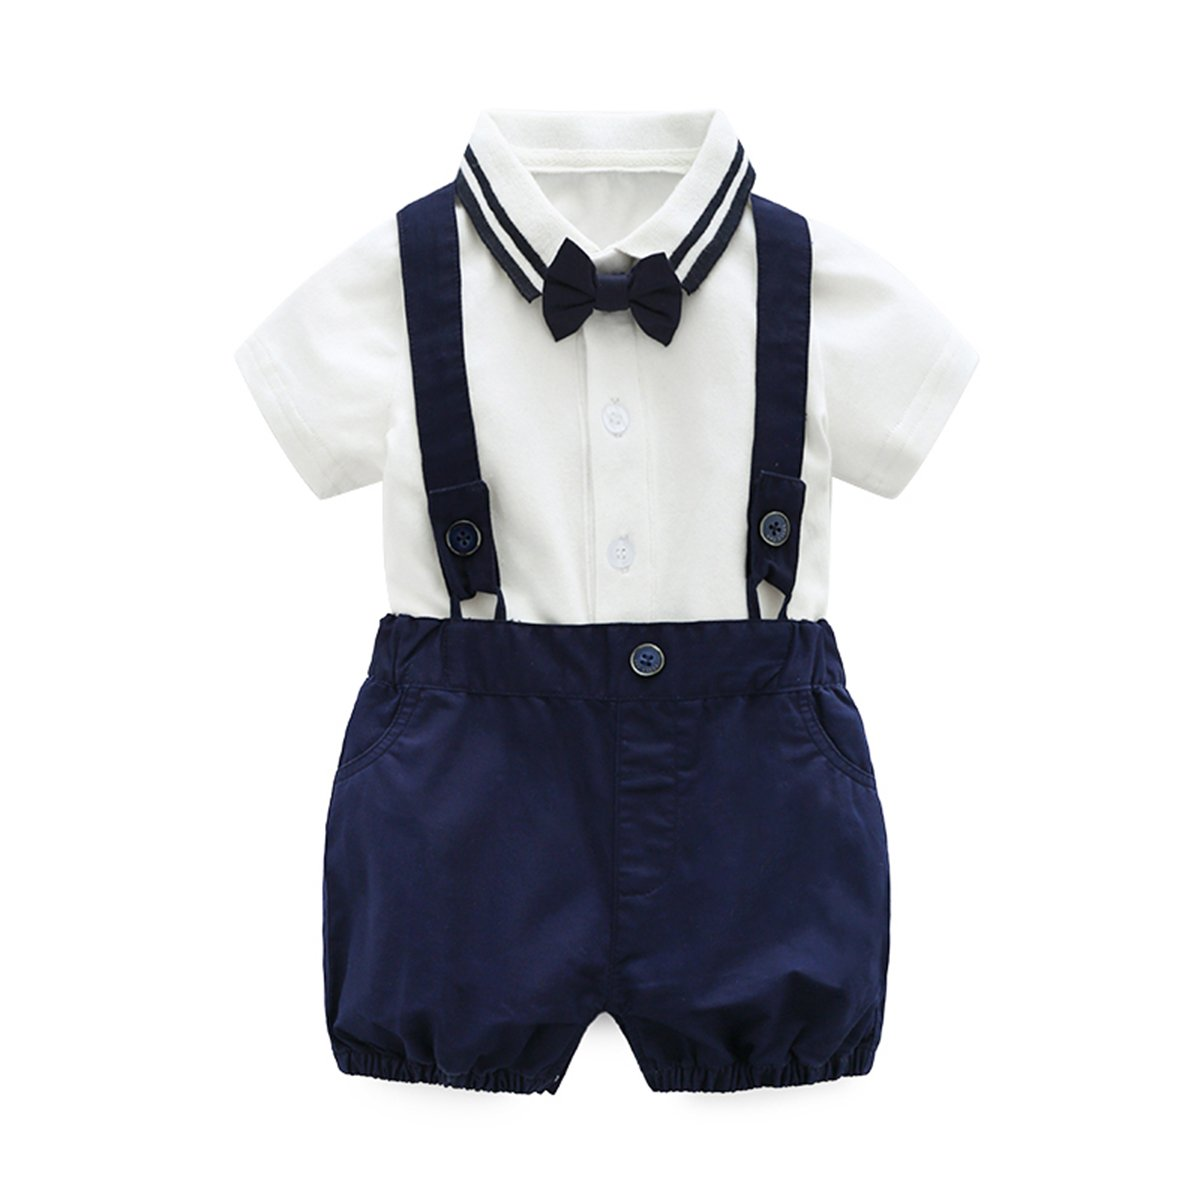 Baby Boys Gentleman Outfits Wedding Suits, Infant Short Sleeve Shirt+Bib Pants+Bow Tie Overalls Clothes Set by Boarnseorl